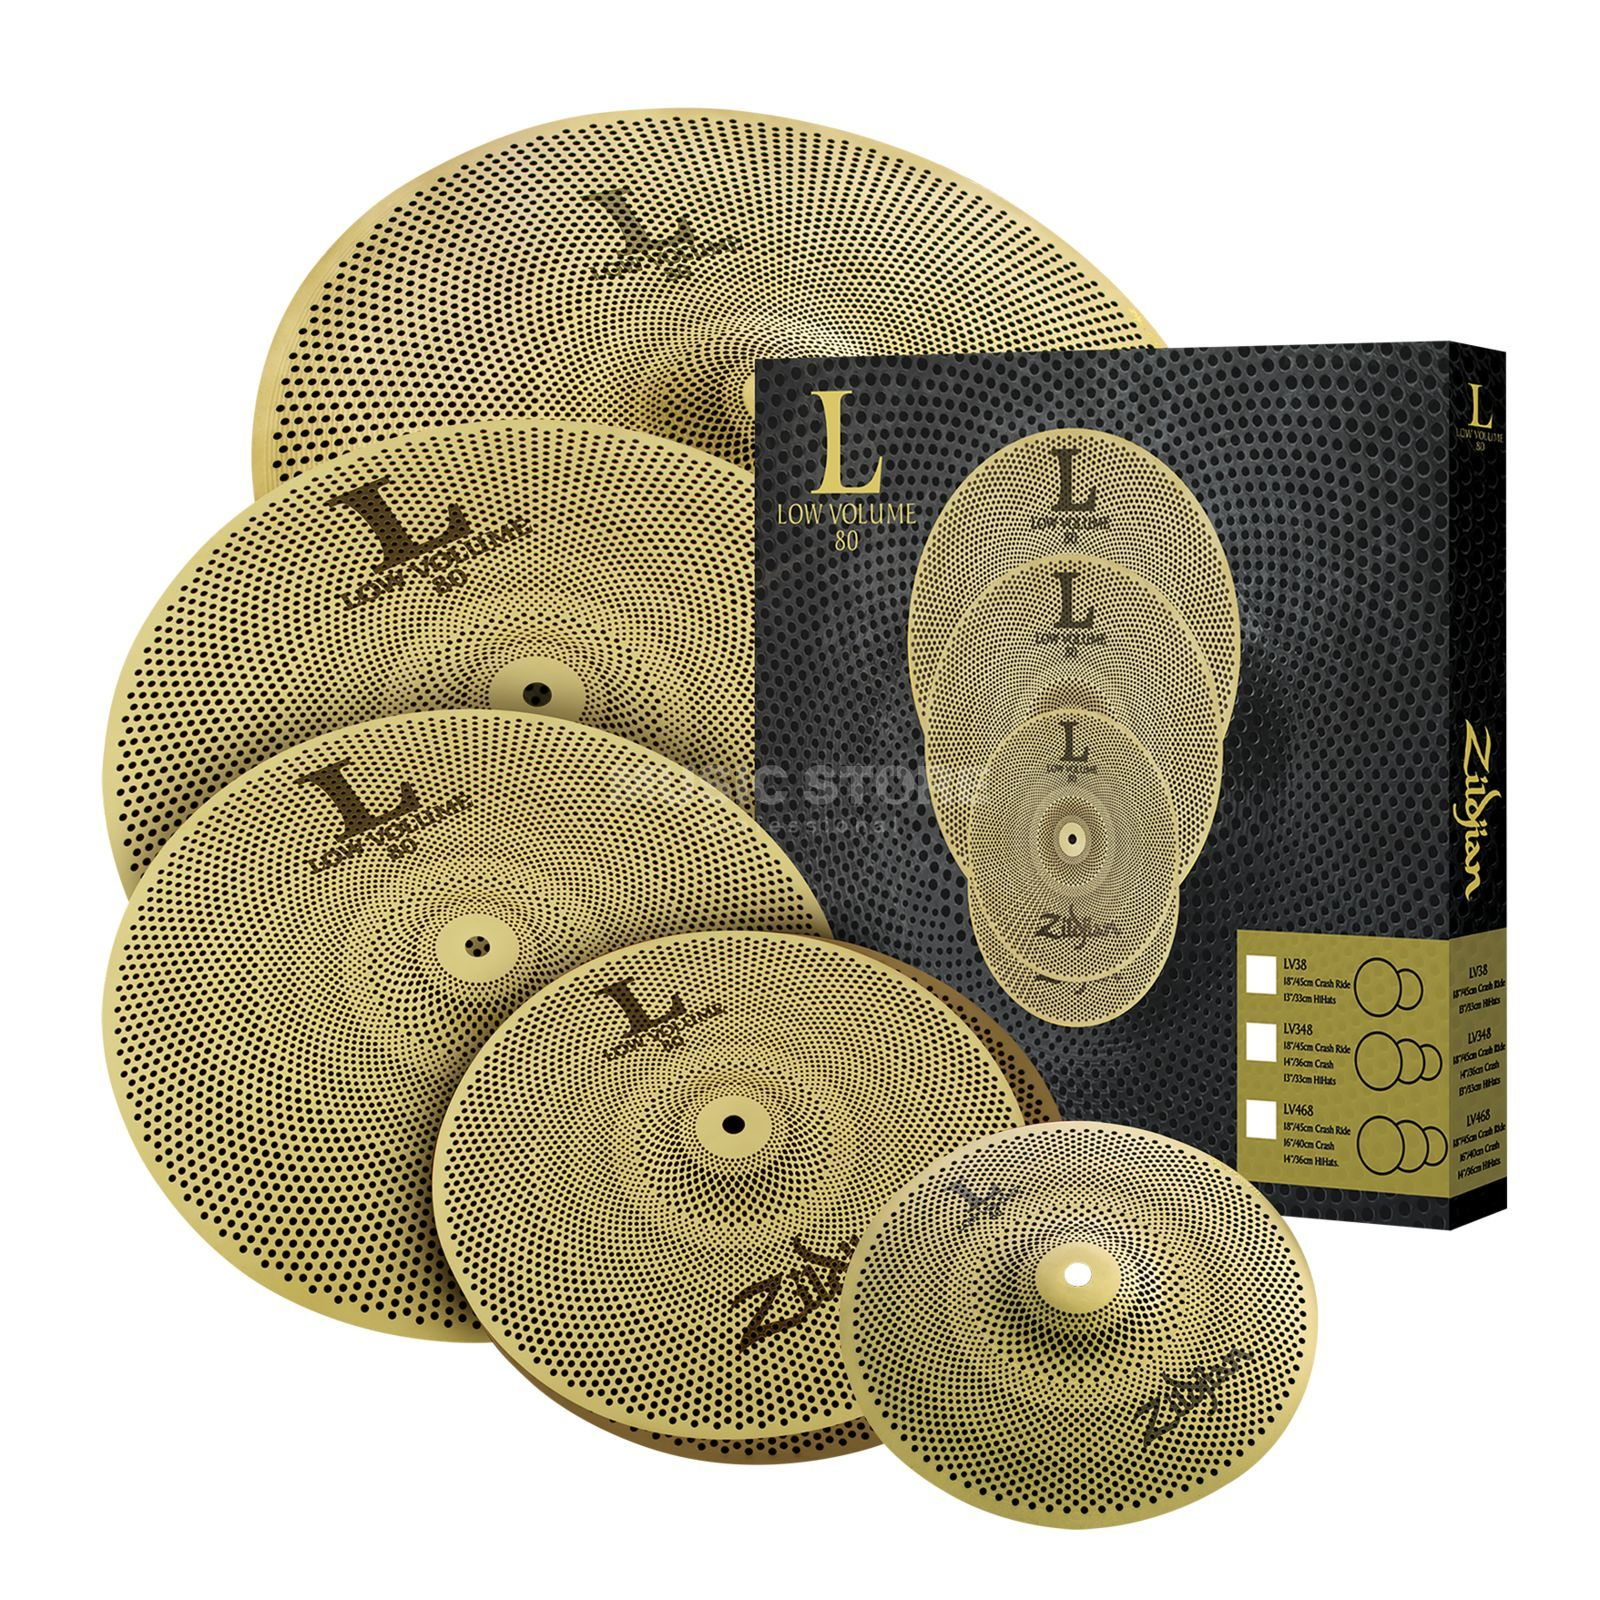 Zildjian L80 Low Volume LV468 Full Pack Produktbild